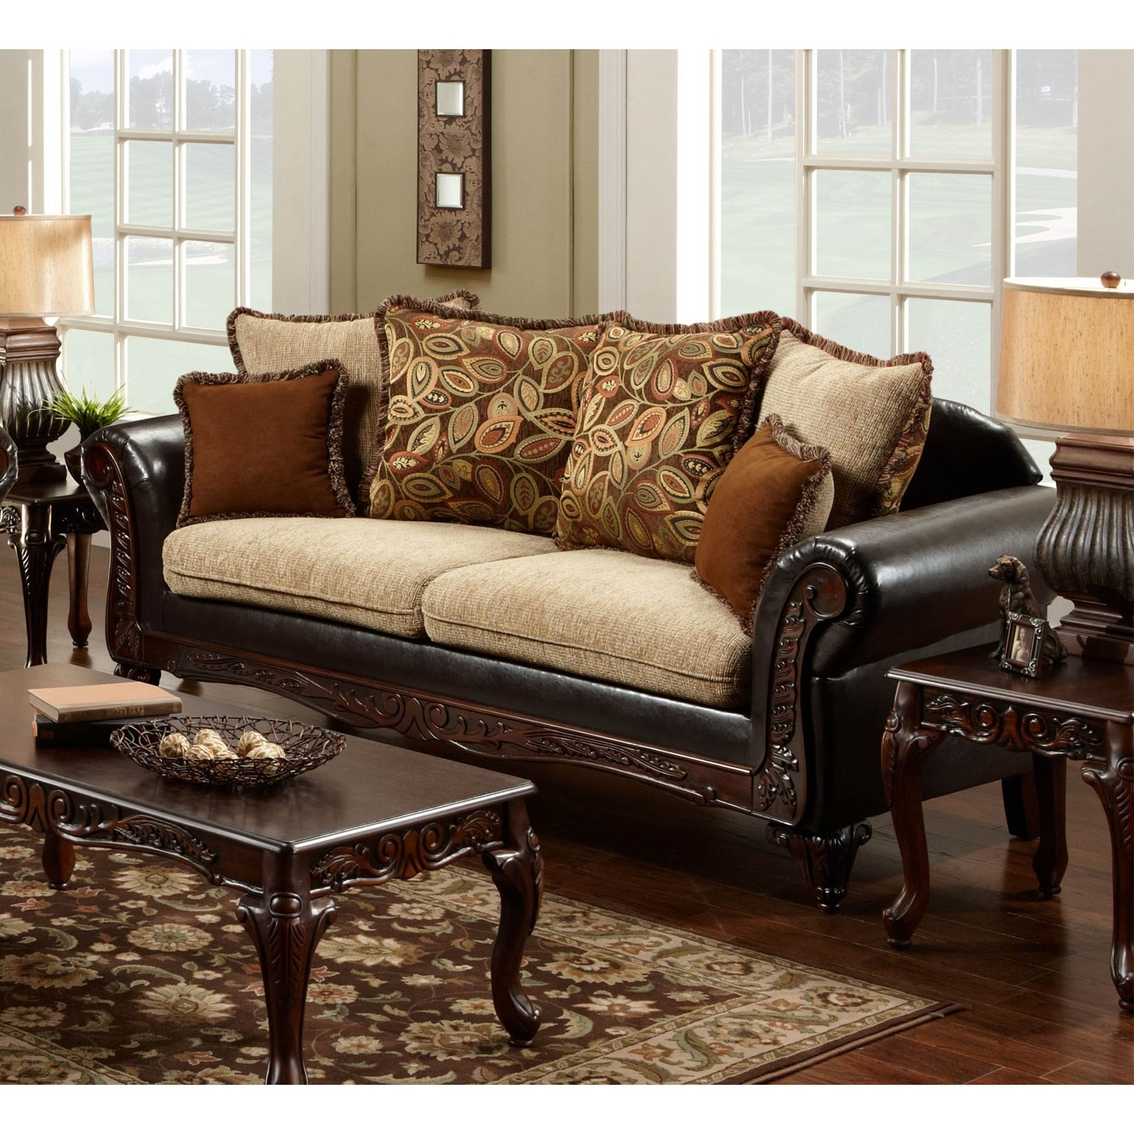 Chelsea Home Trixie Sofa Sofas Amp Couches Home